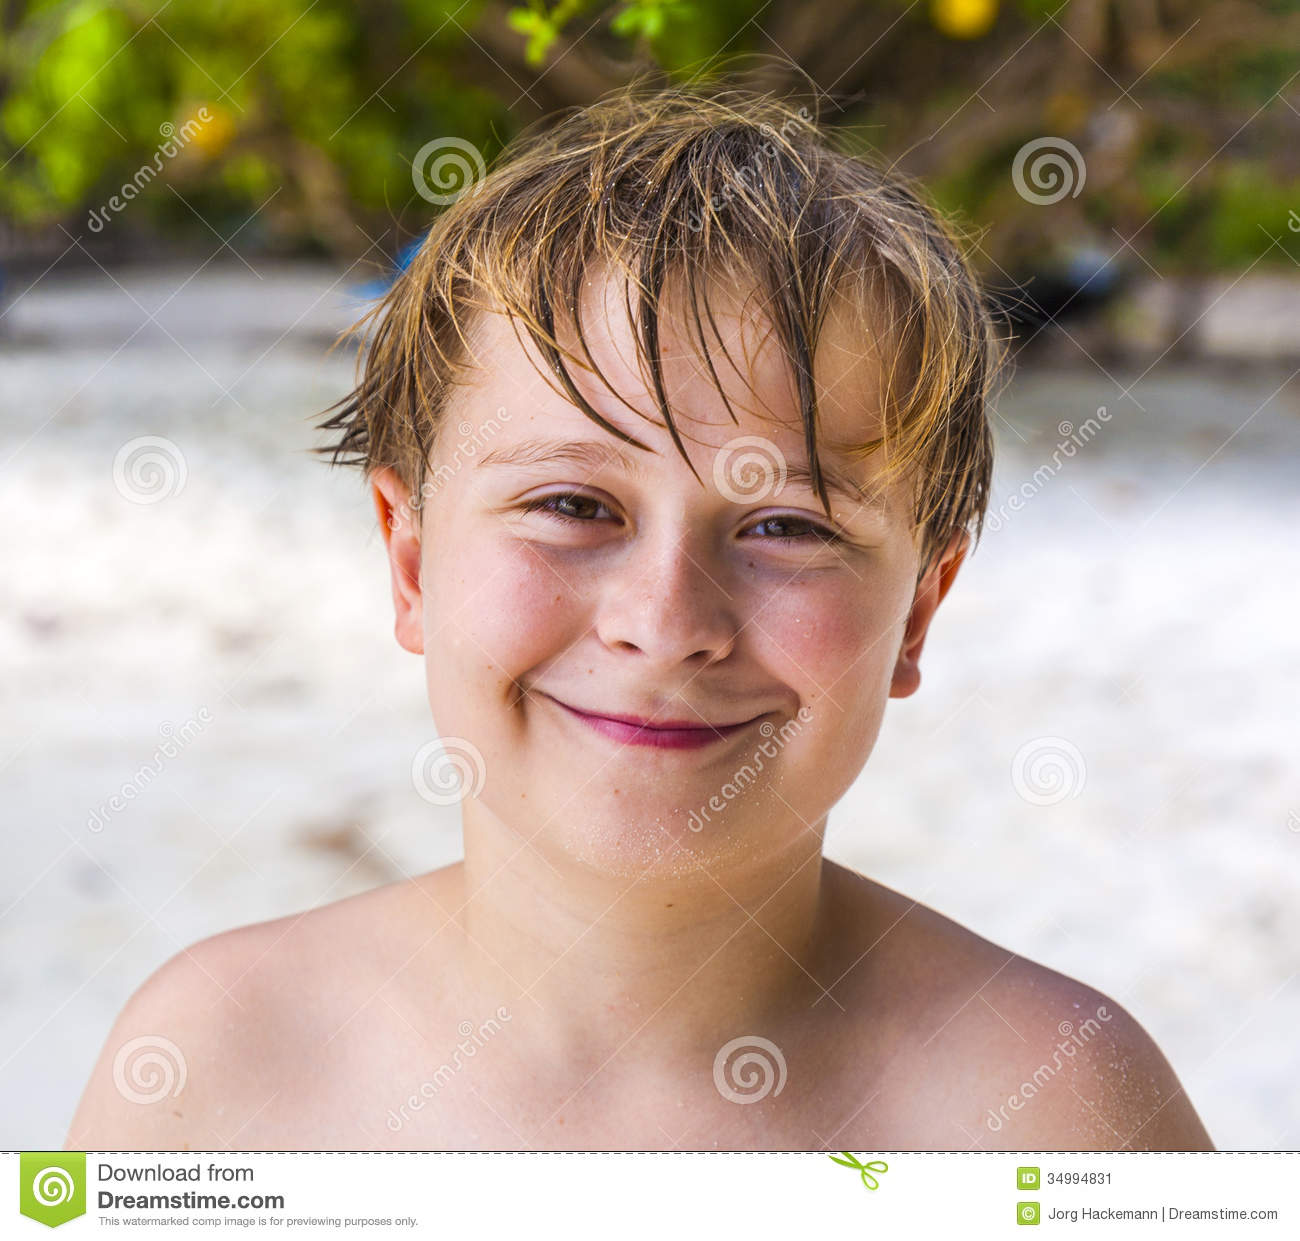 Young Happy Boy With Brown Wet Hair Is Smiling And: Smiling Boy With Wet Hair At The Beach Stock Image